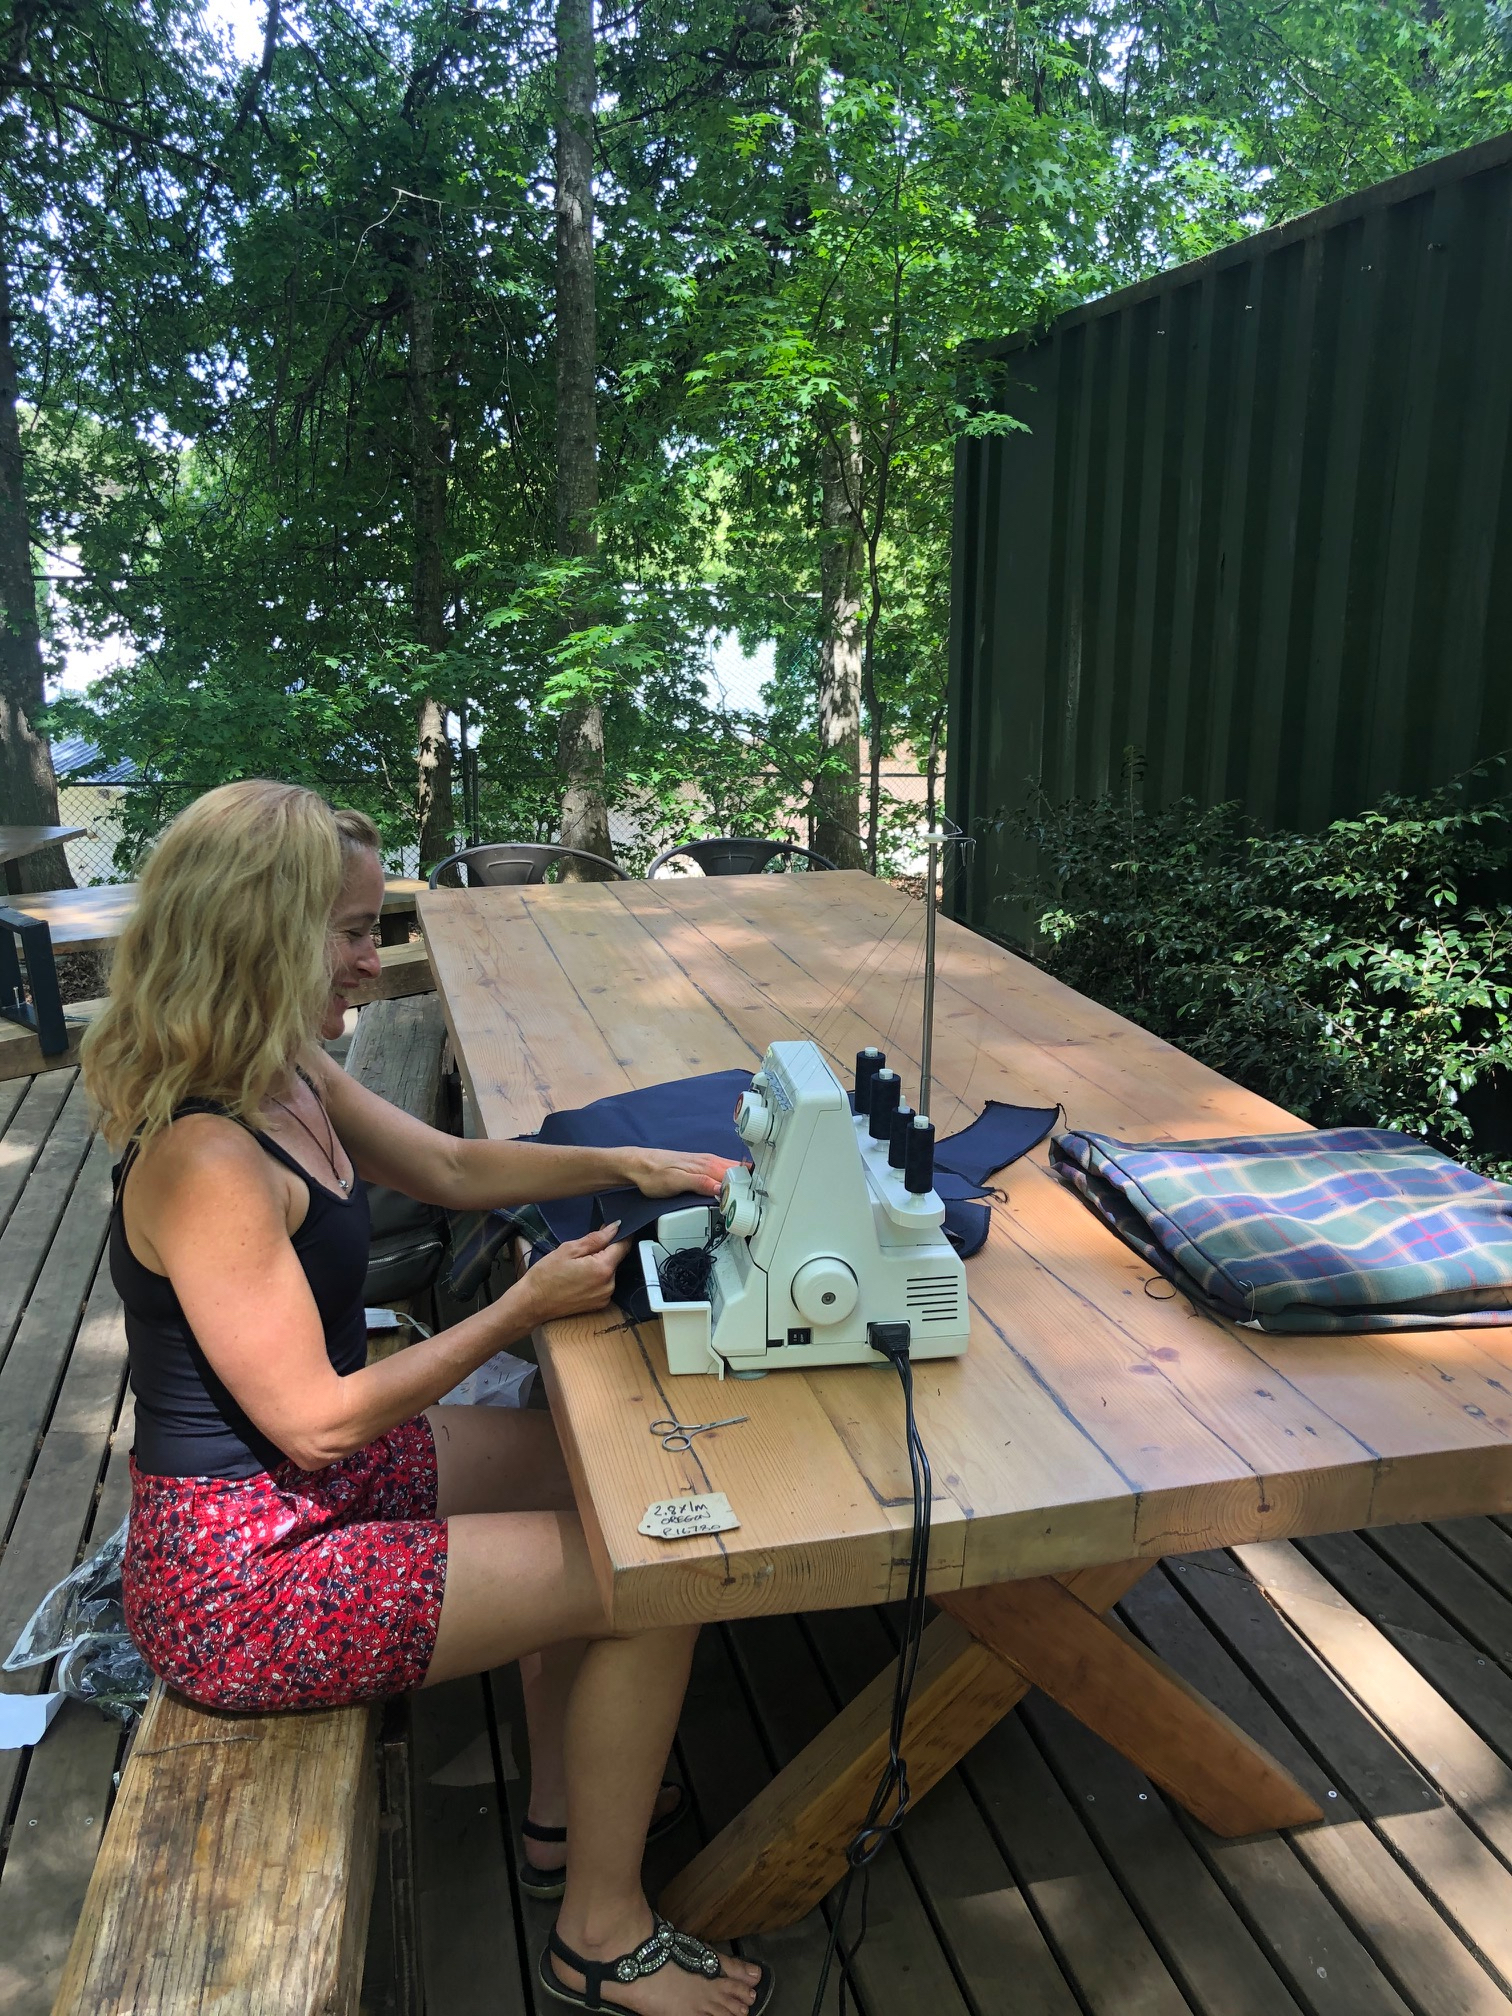 Office work in the forest